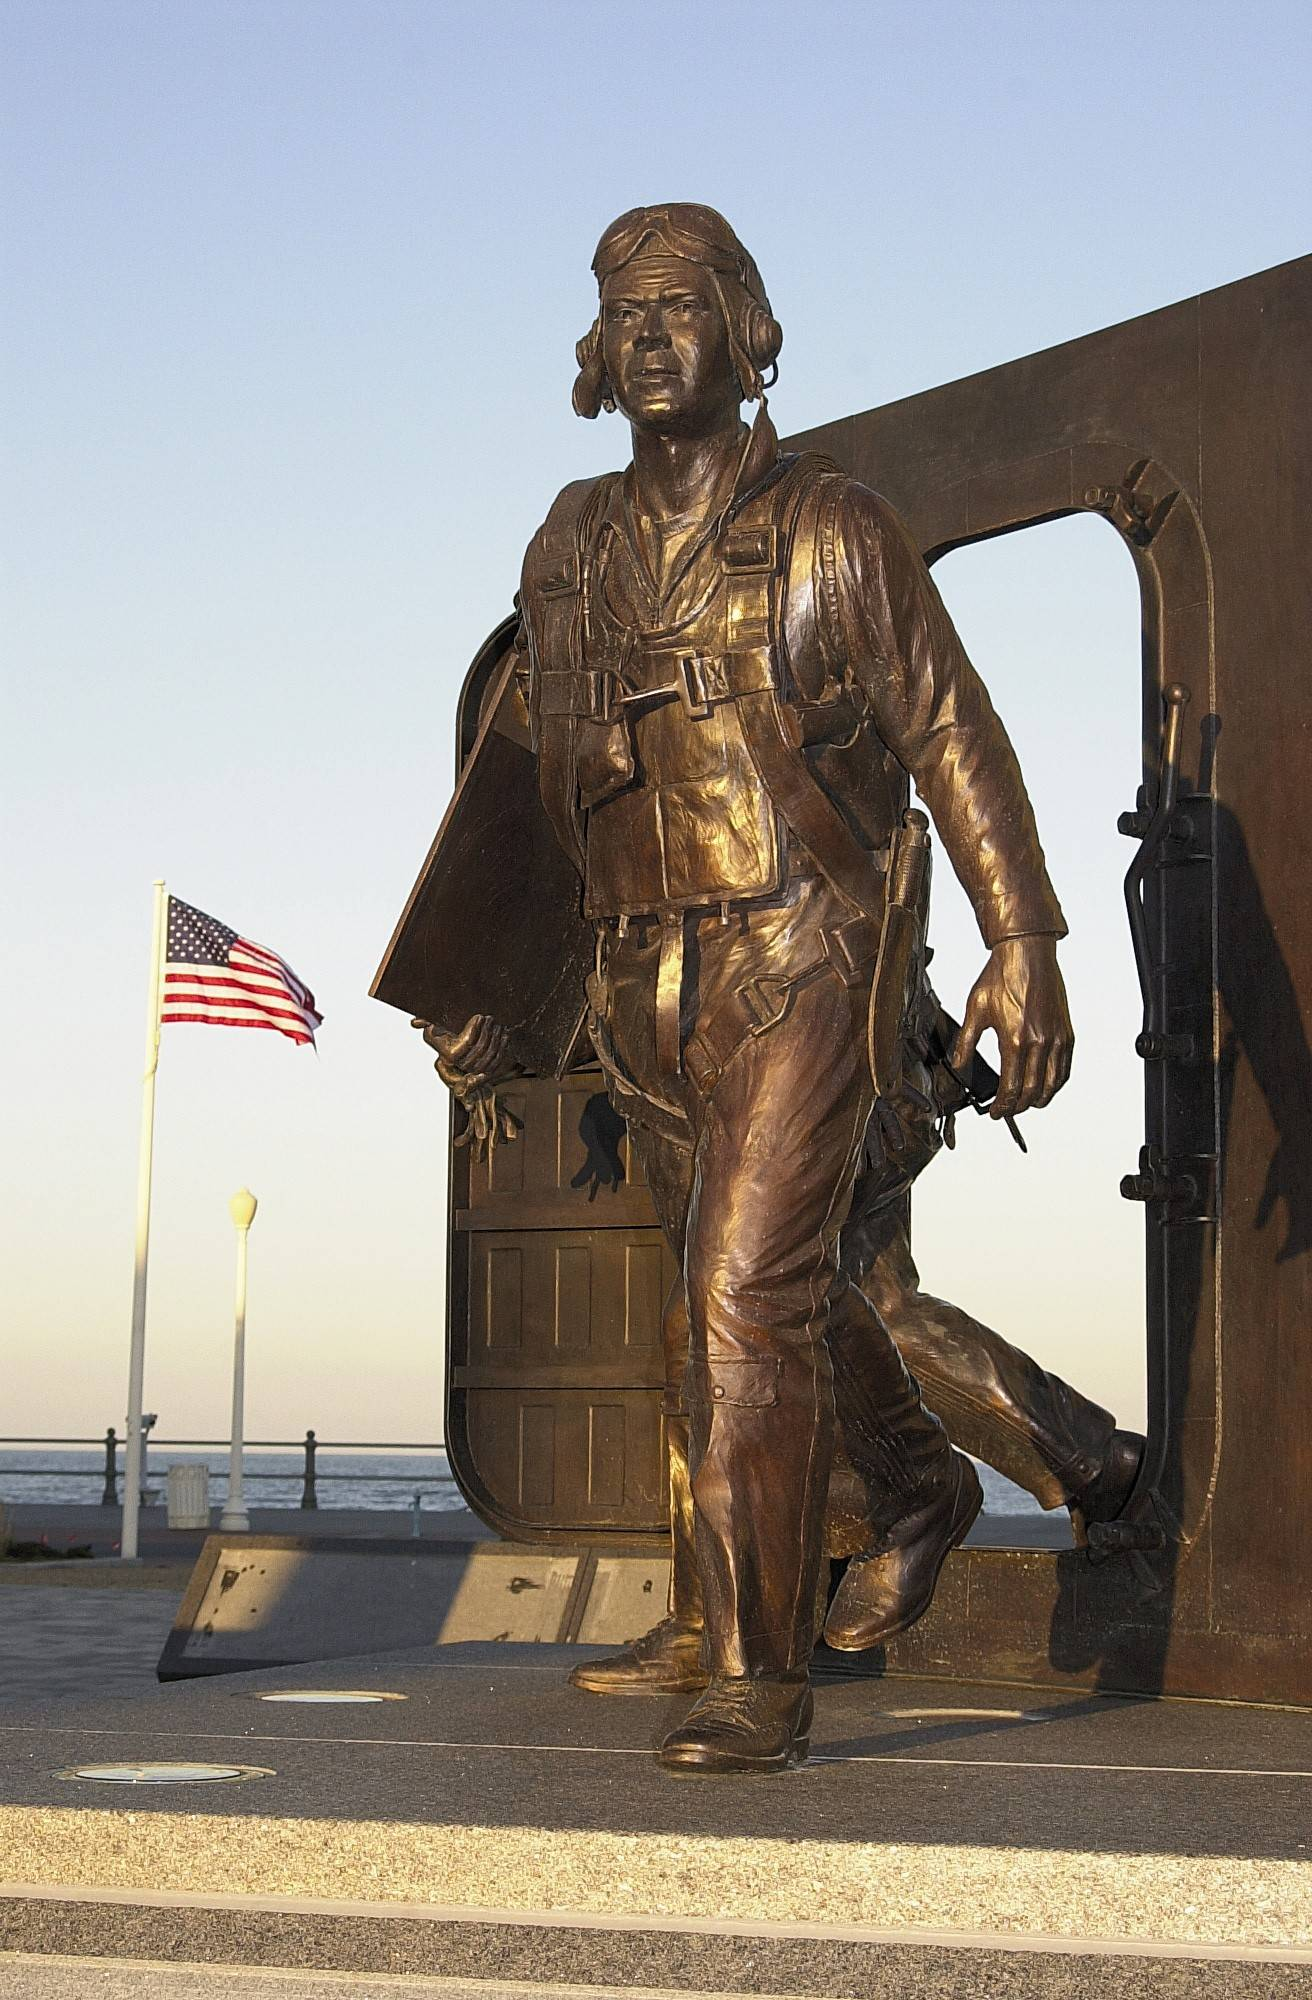 The Naval Aviation Monument Park, just off the boardwalk in Virginia Beach, Va., is a monument to the history of naval aviation. Plus, it's free to visit.